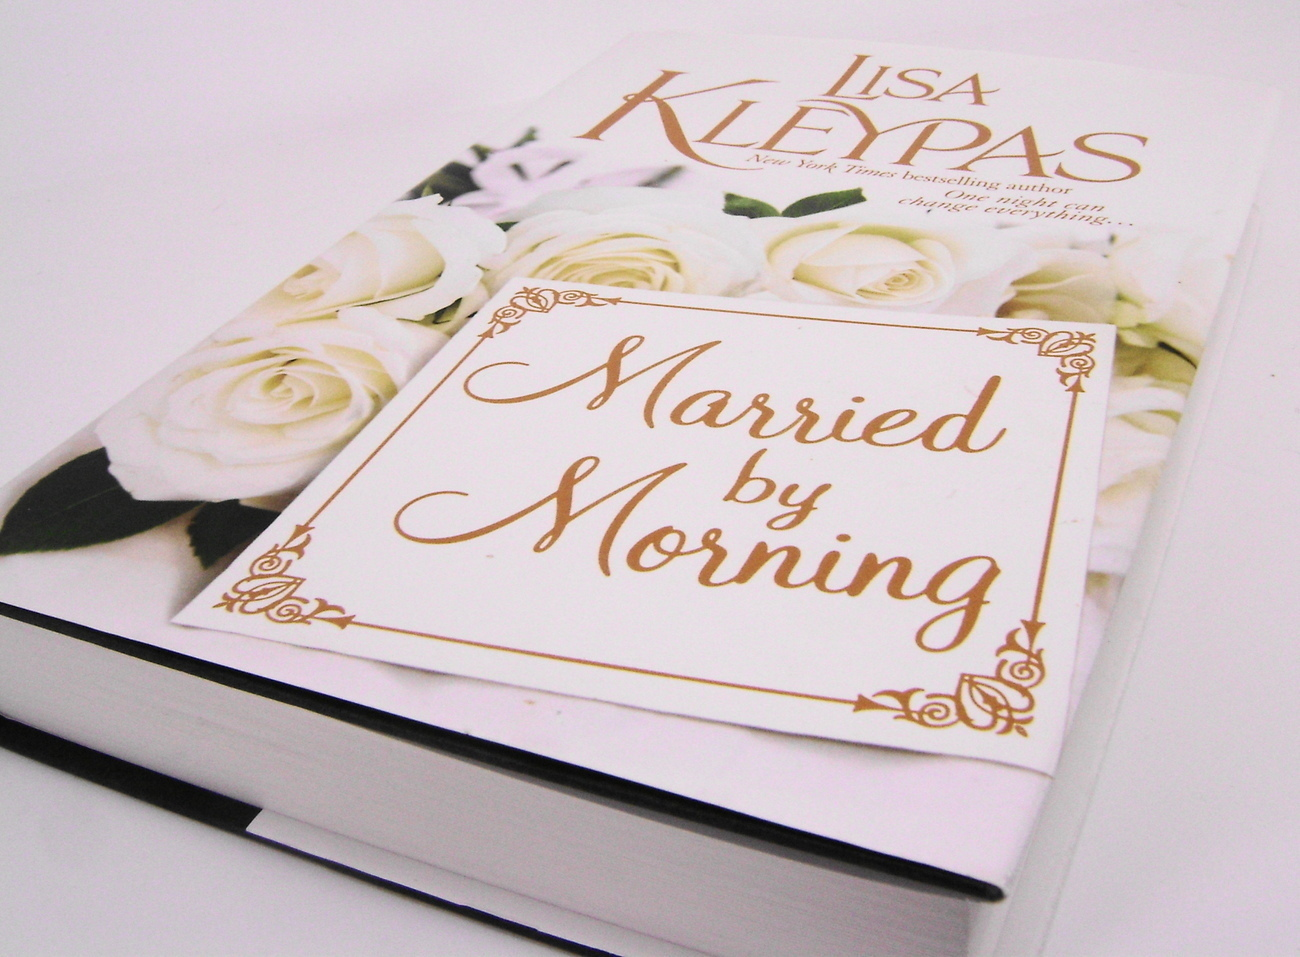 Married by Moring  Hathaway Series  by Lisa Kleypas HC